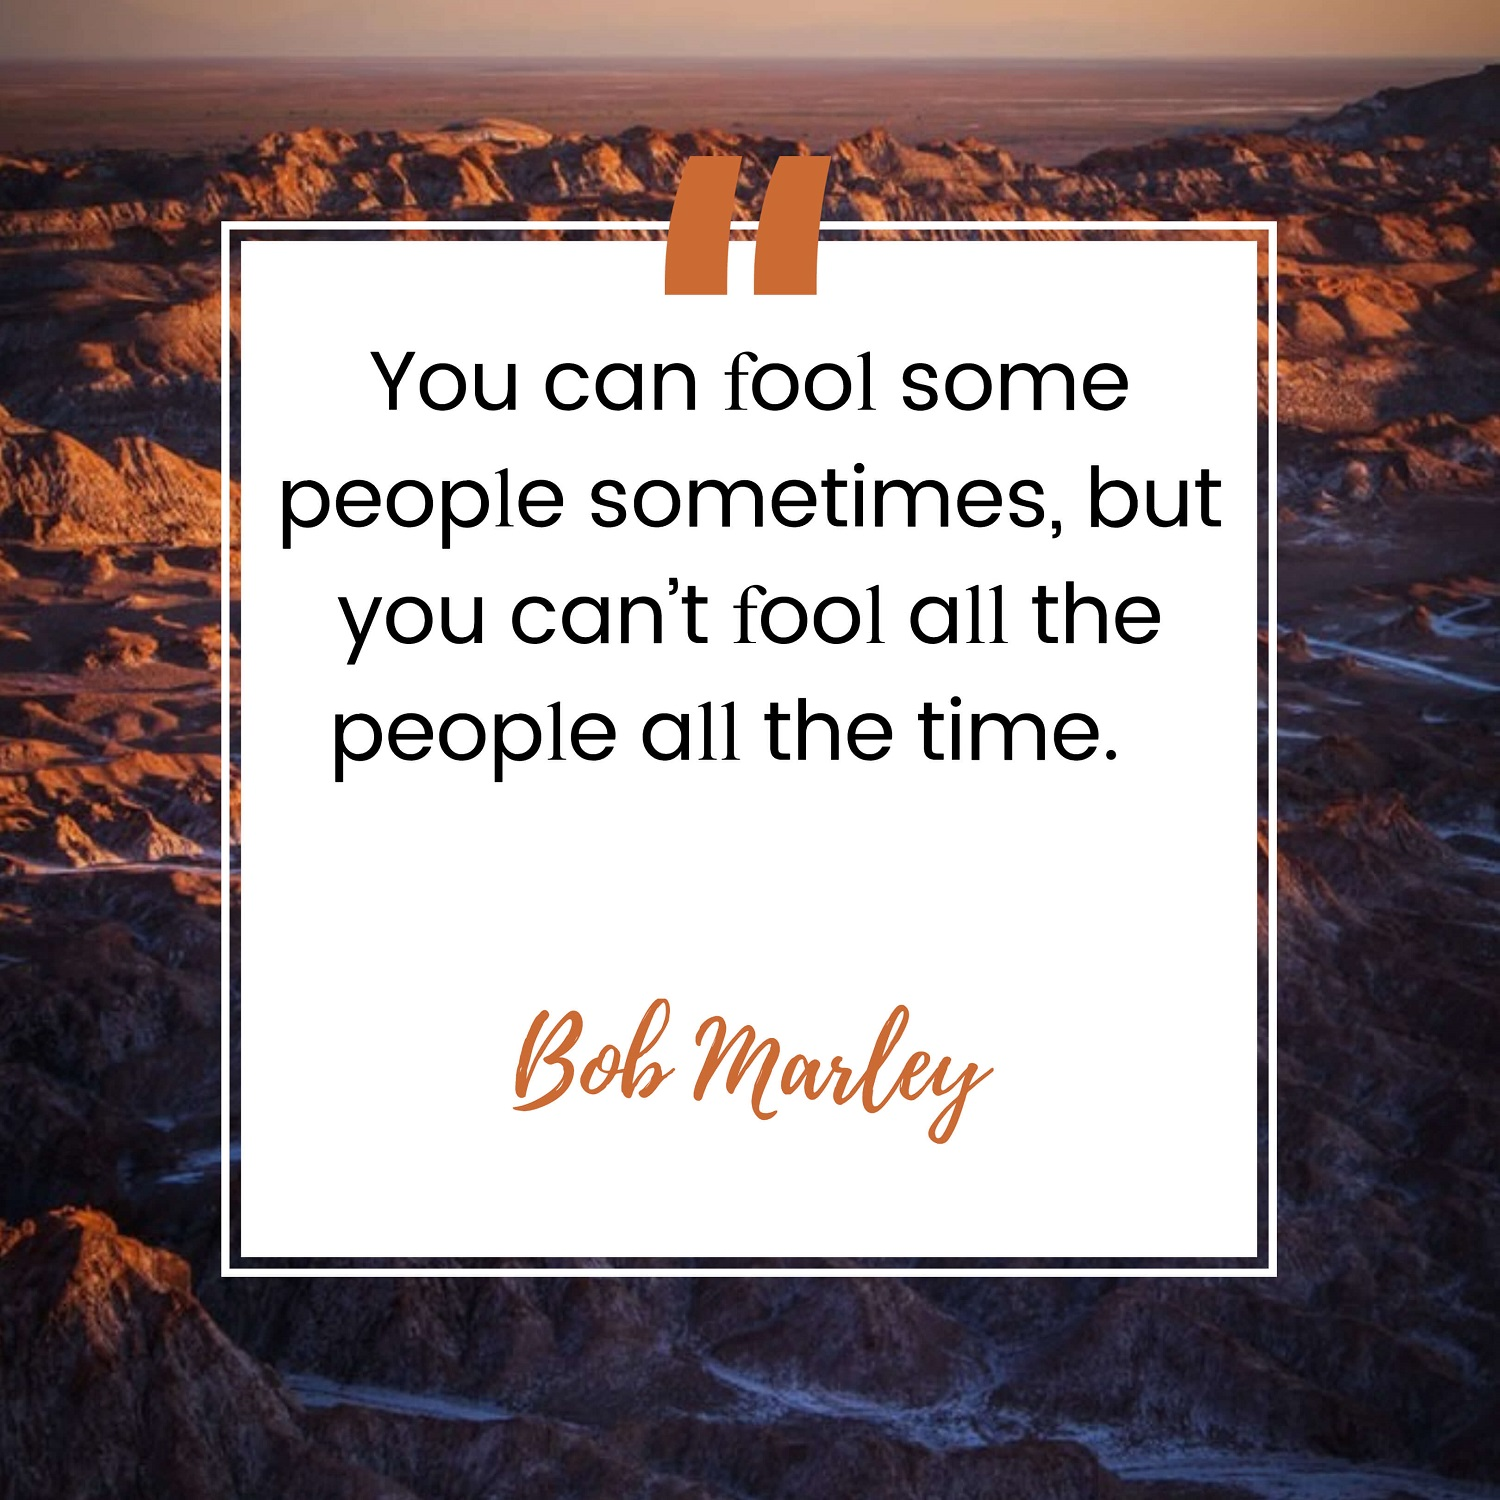 Best Bob Marley Quotes on Life